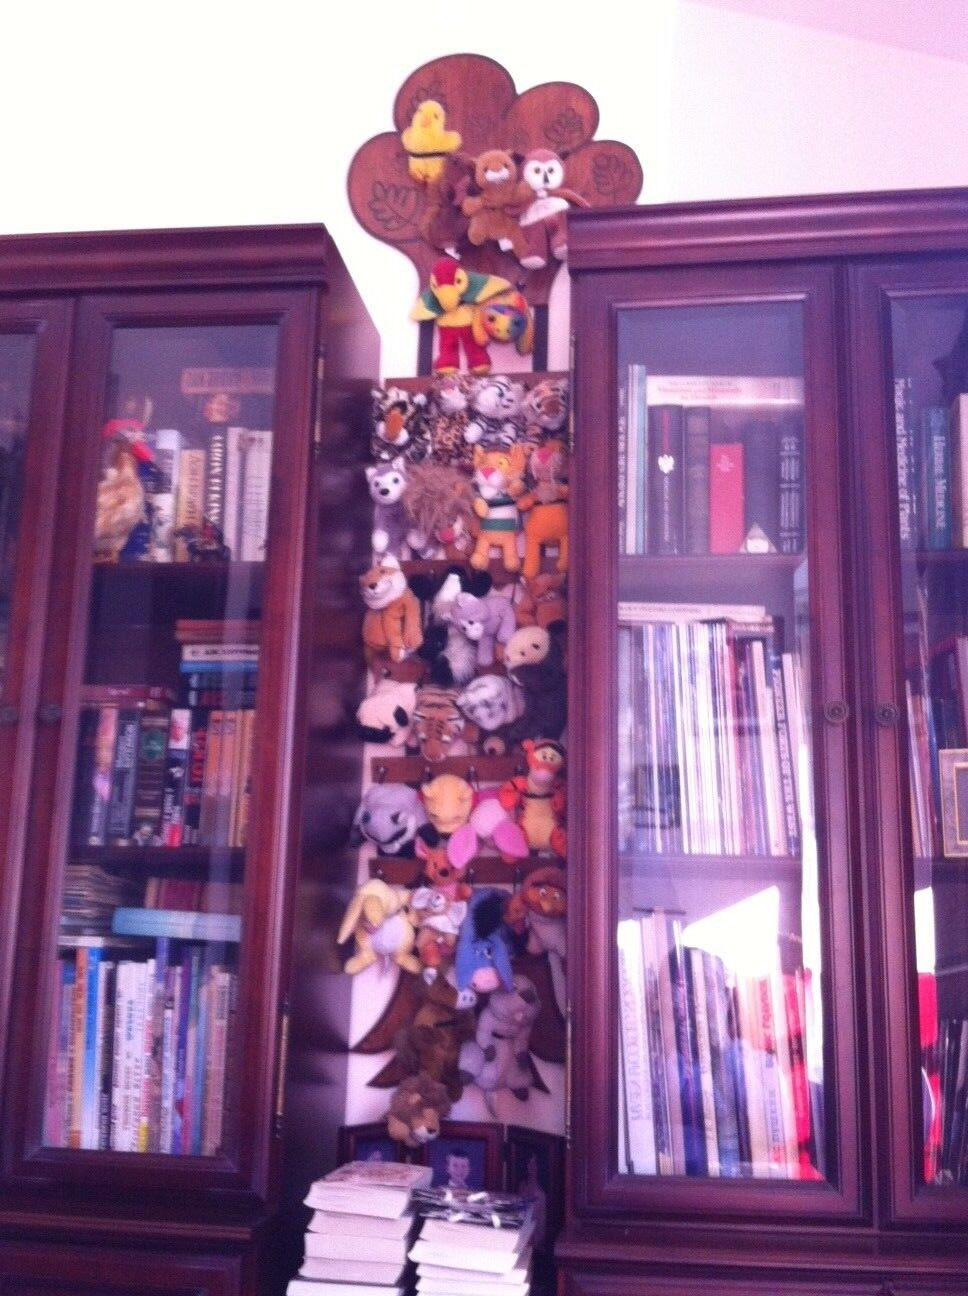 Collection of Beanie babies with beanie - babies tree.